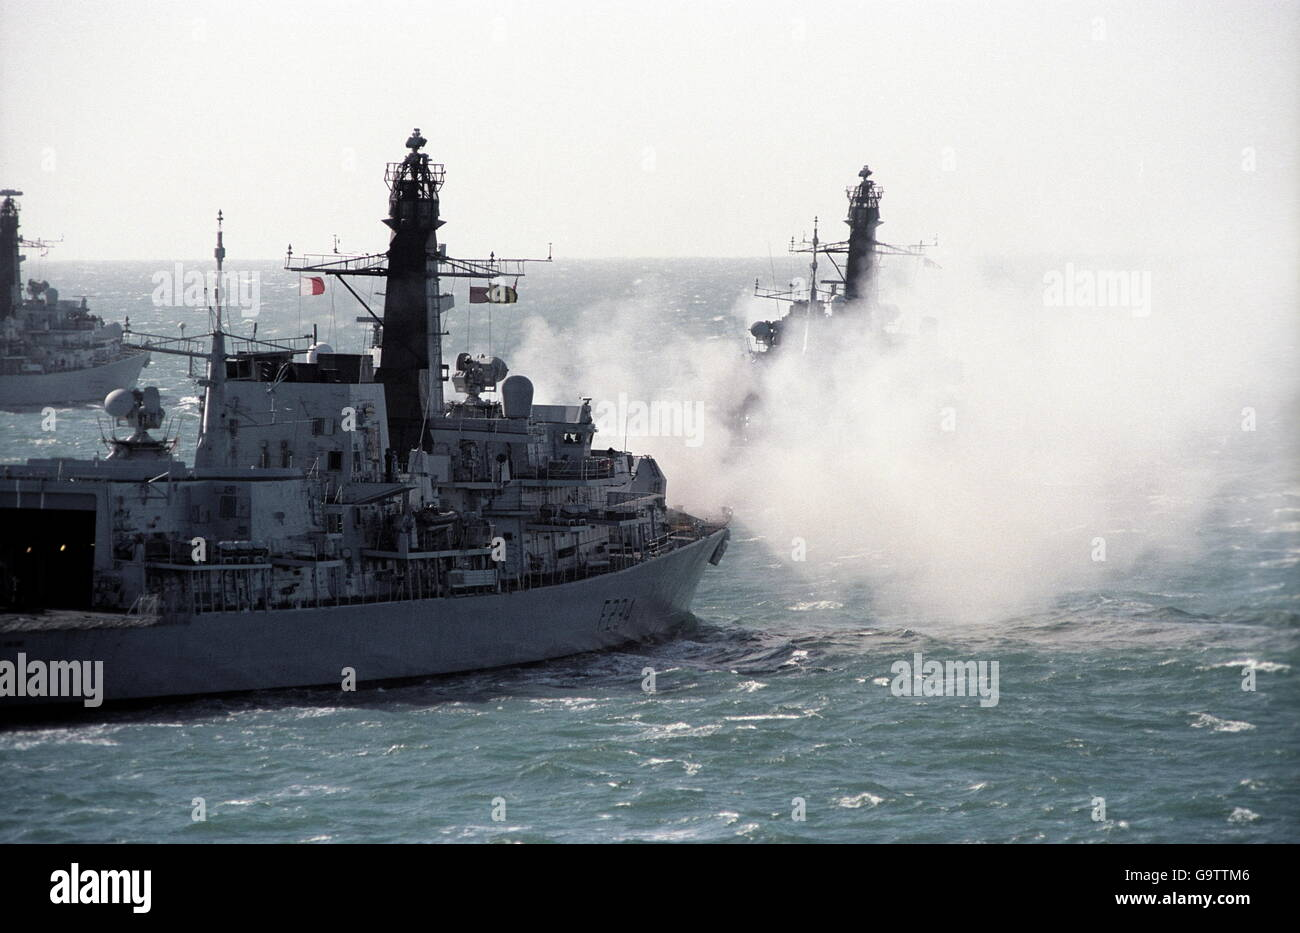 AJAXNETPHOTO. 2002. AT SEA, CHANNEL, ENGLAND. - WAR GAMES - HMS IRON DUKE AND OTHER WARSHIPS ON EXERCISE IN THE - Stock Image